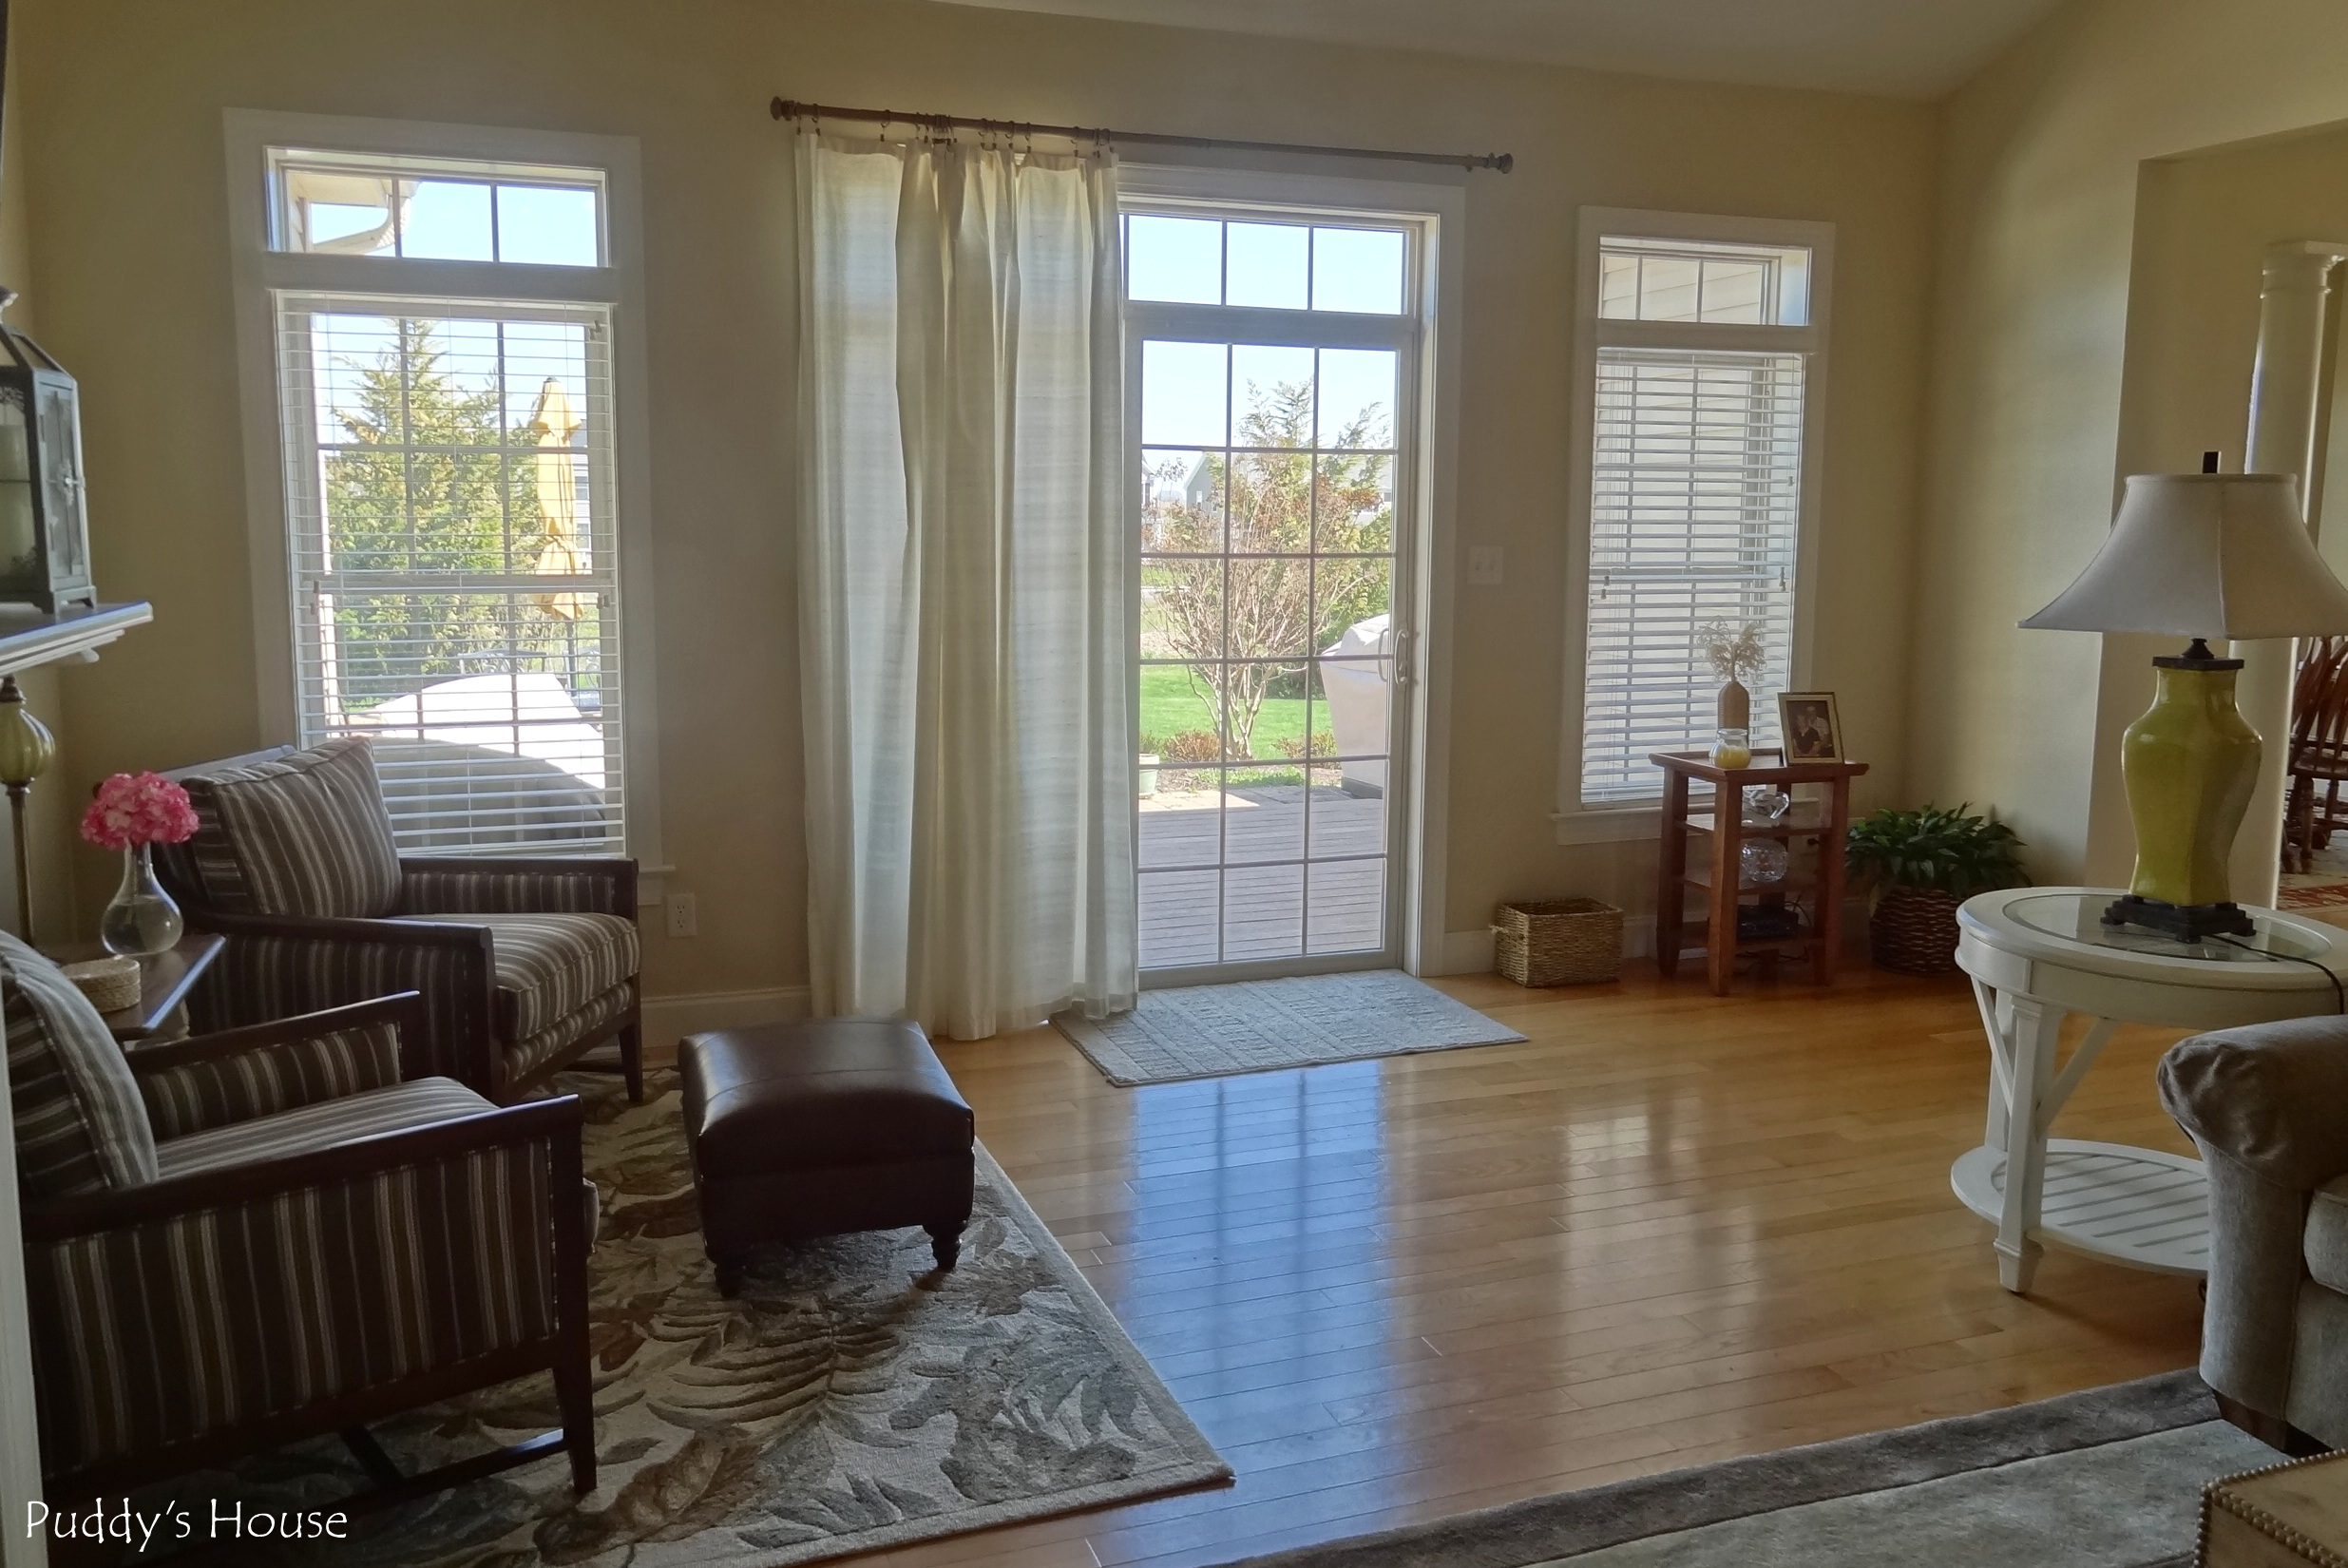 Living Room Reveal - looking out to patio doors